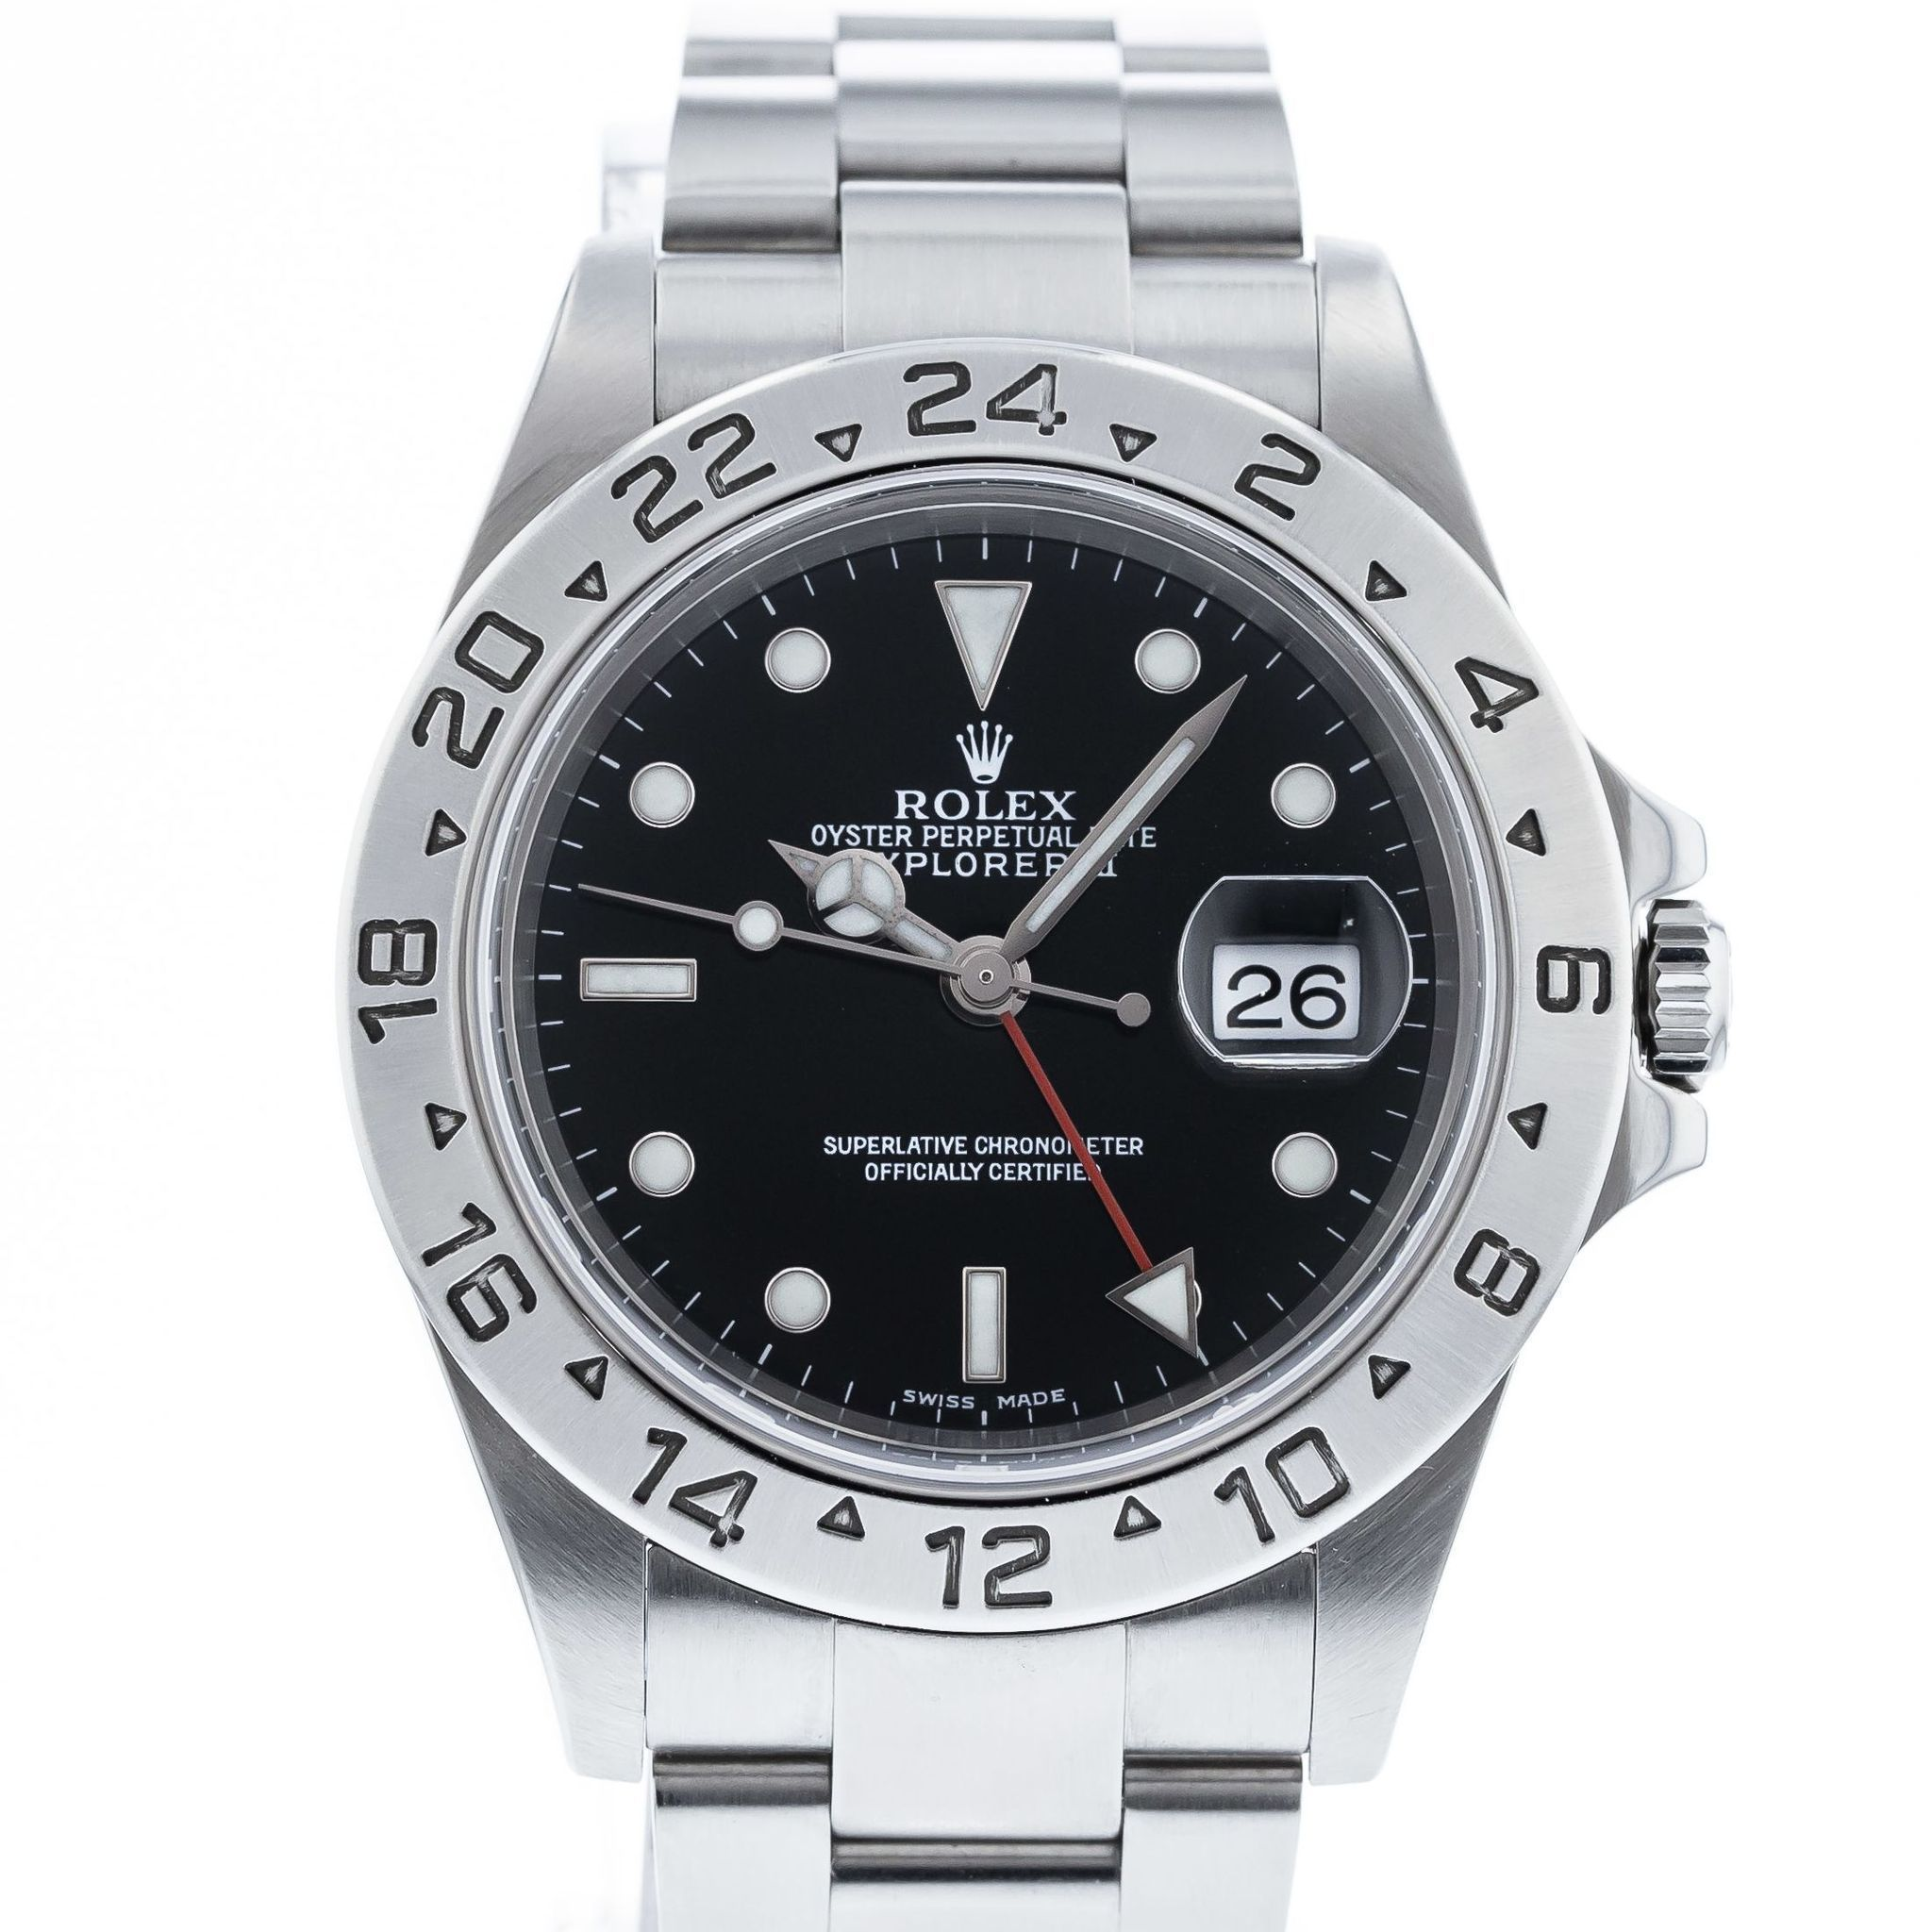 Rolex Explorer II 16570T #rolexexplorerii Authentic Used Rolex Explorer II 16570T Watch (10-10-ROL-U6L7MN) #rolexexplorerii Rolex Explorer II 16570T #rolexexplorerii Authentic Used Rolex Explorer II 16570T Watch (10-10-ROL-U6L7MN) #rolexexplorer Rolex Explorer II 16570T #rolexexplorerii Authentic Used Rolex Explorer II 16570T Watch (10-10-ROL-U6L7MN) #rolexexplorerii Rolex Explorer II 16570T #rolexexplorerii Authentic Used Rolex Explorer II 16570T Watch (10-10-ROL-U6L7MN) #rolexexplorer